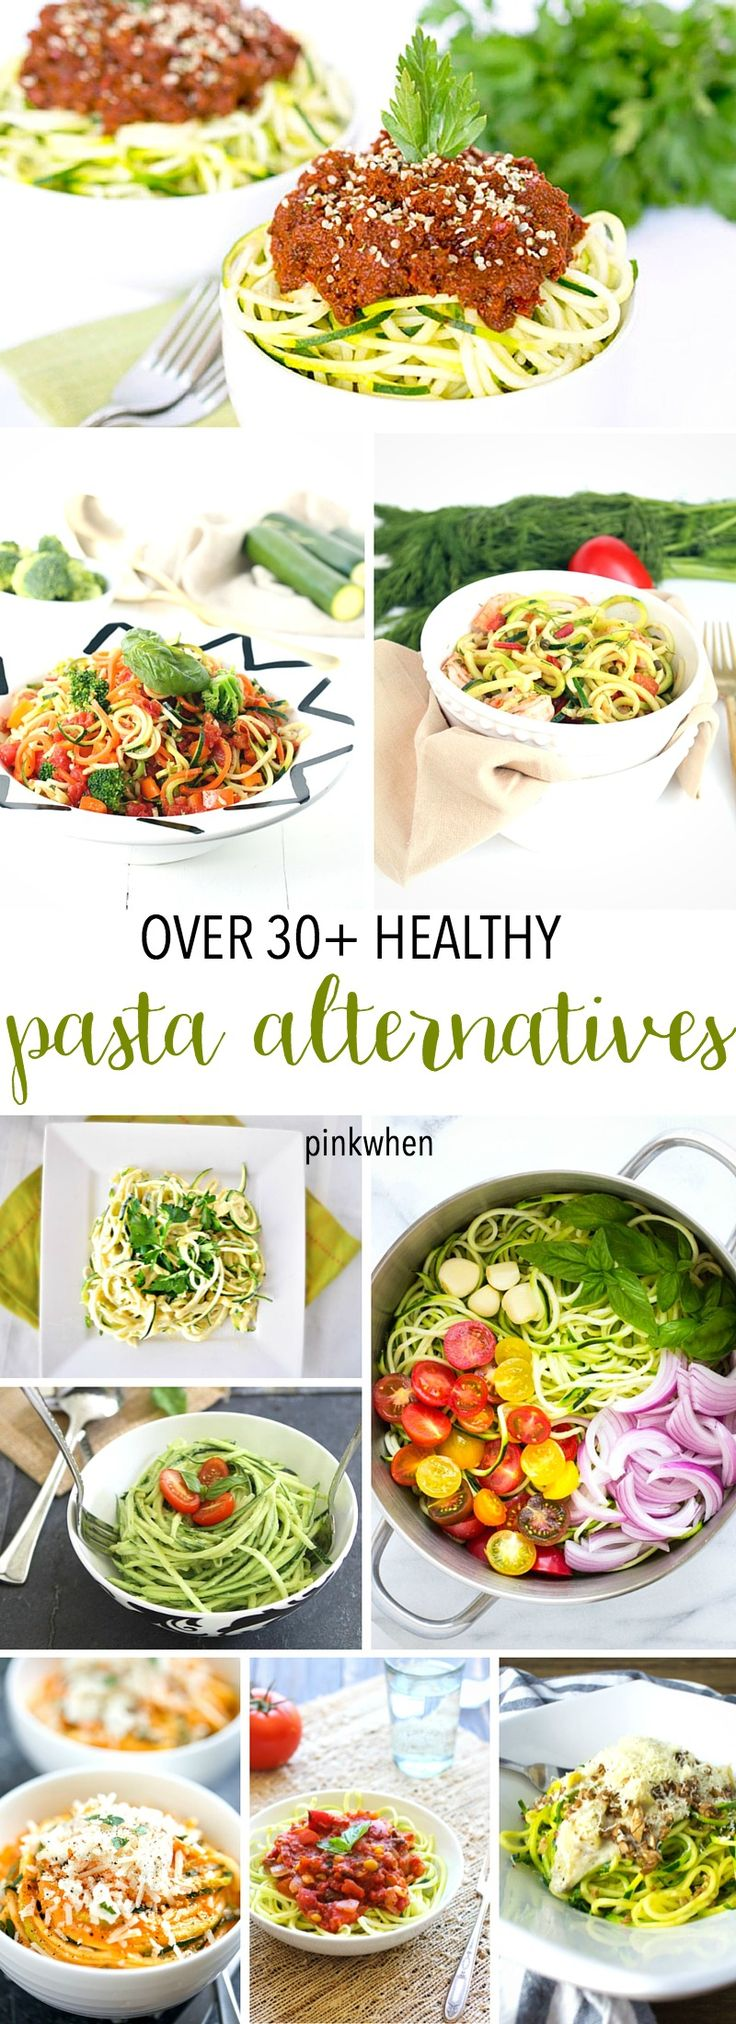 Over 30+ Low Carb and Healthy Pasta Alternatives. Popular Recipe pin!